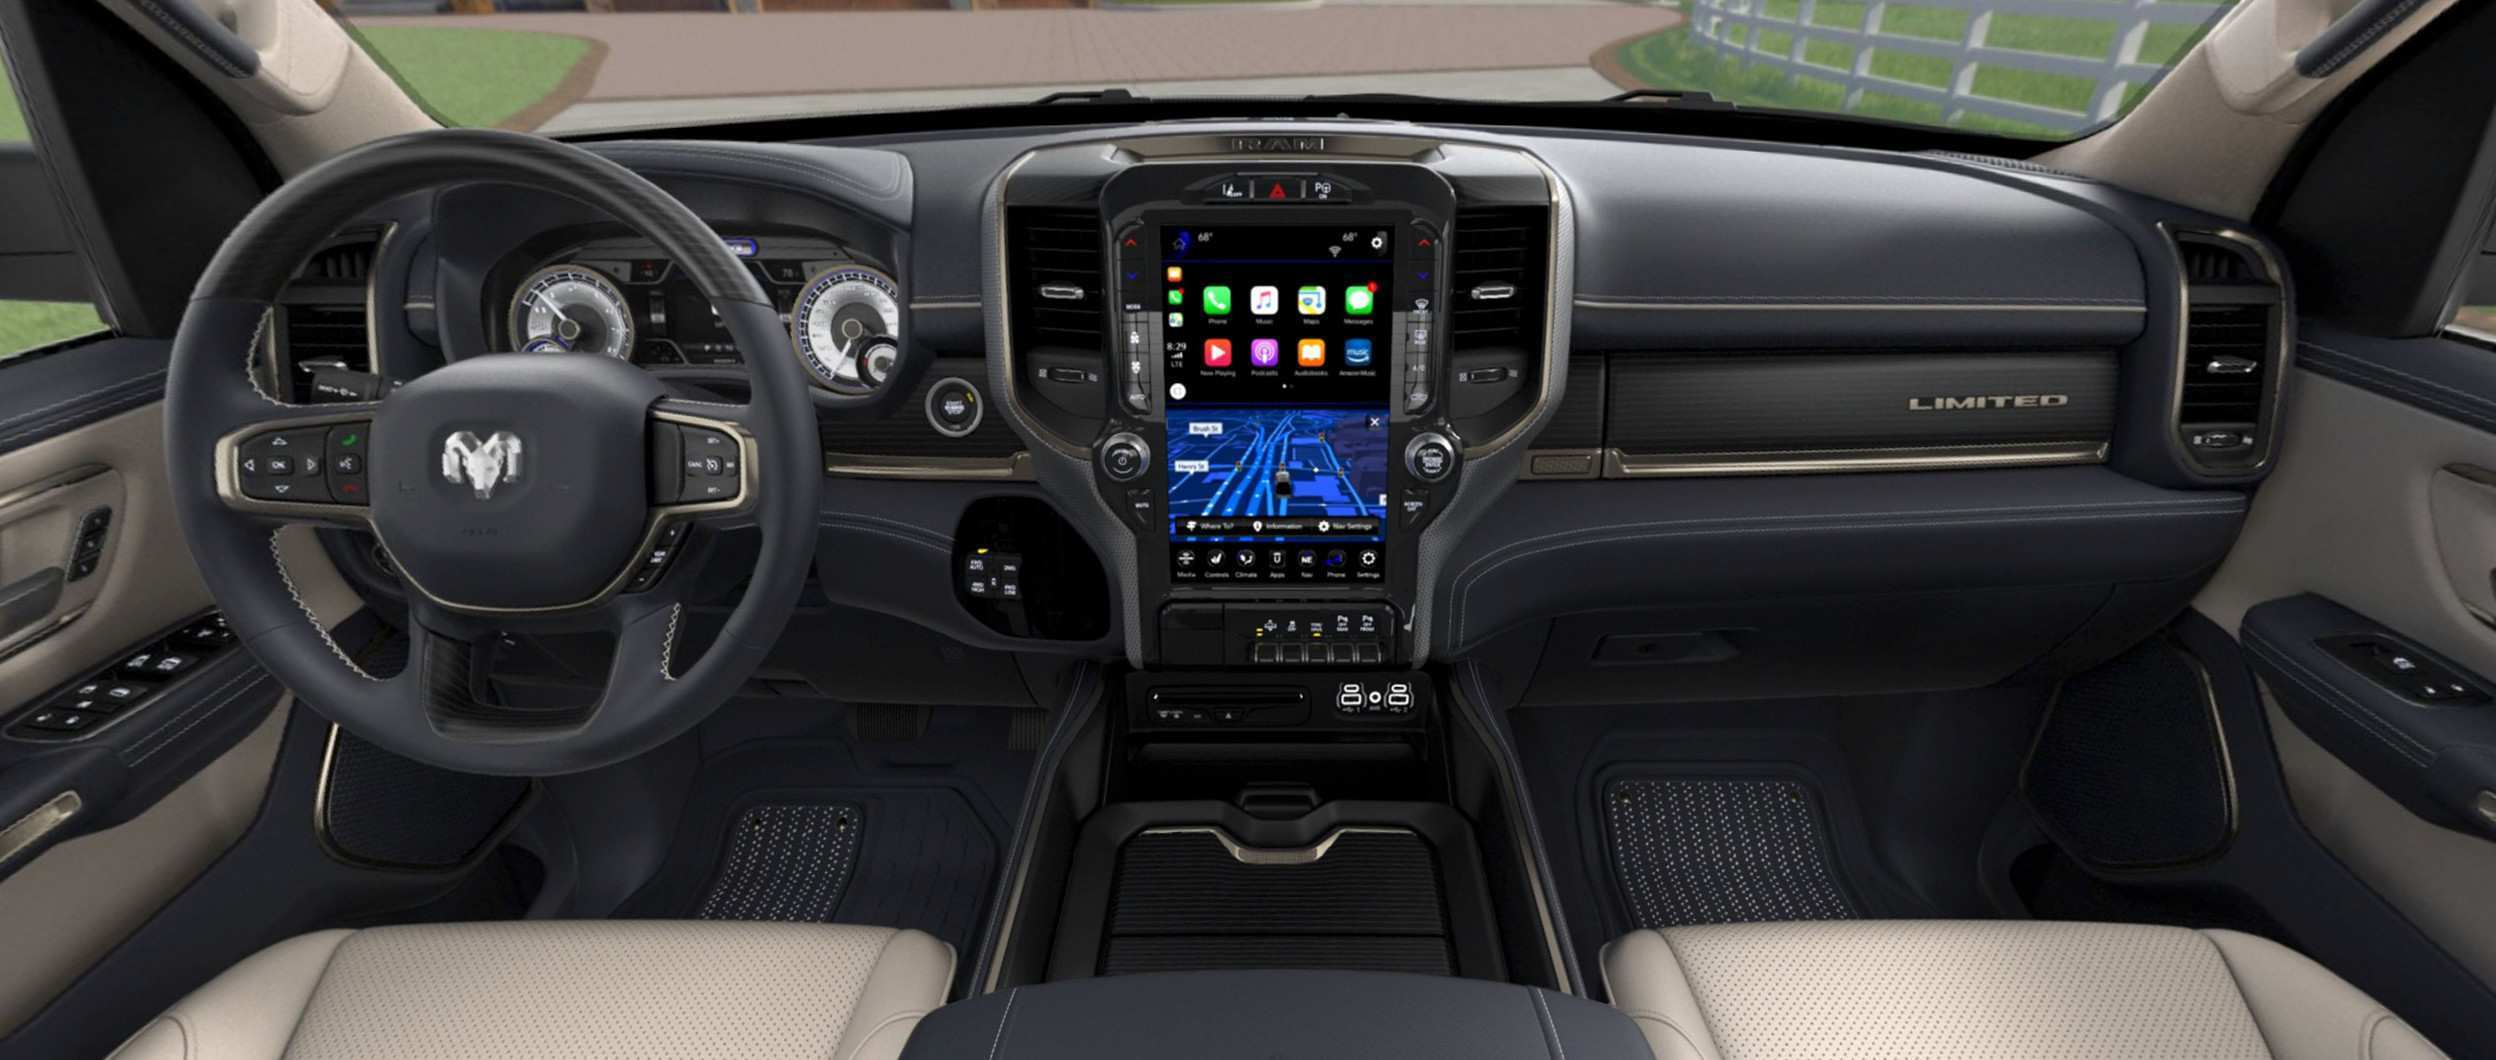 63 Great 2019 Dodge Ram Interior Redesign Exterior for 2019 Dodge Ram Interior Redesign